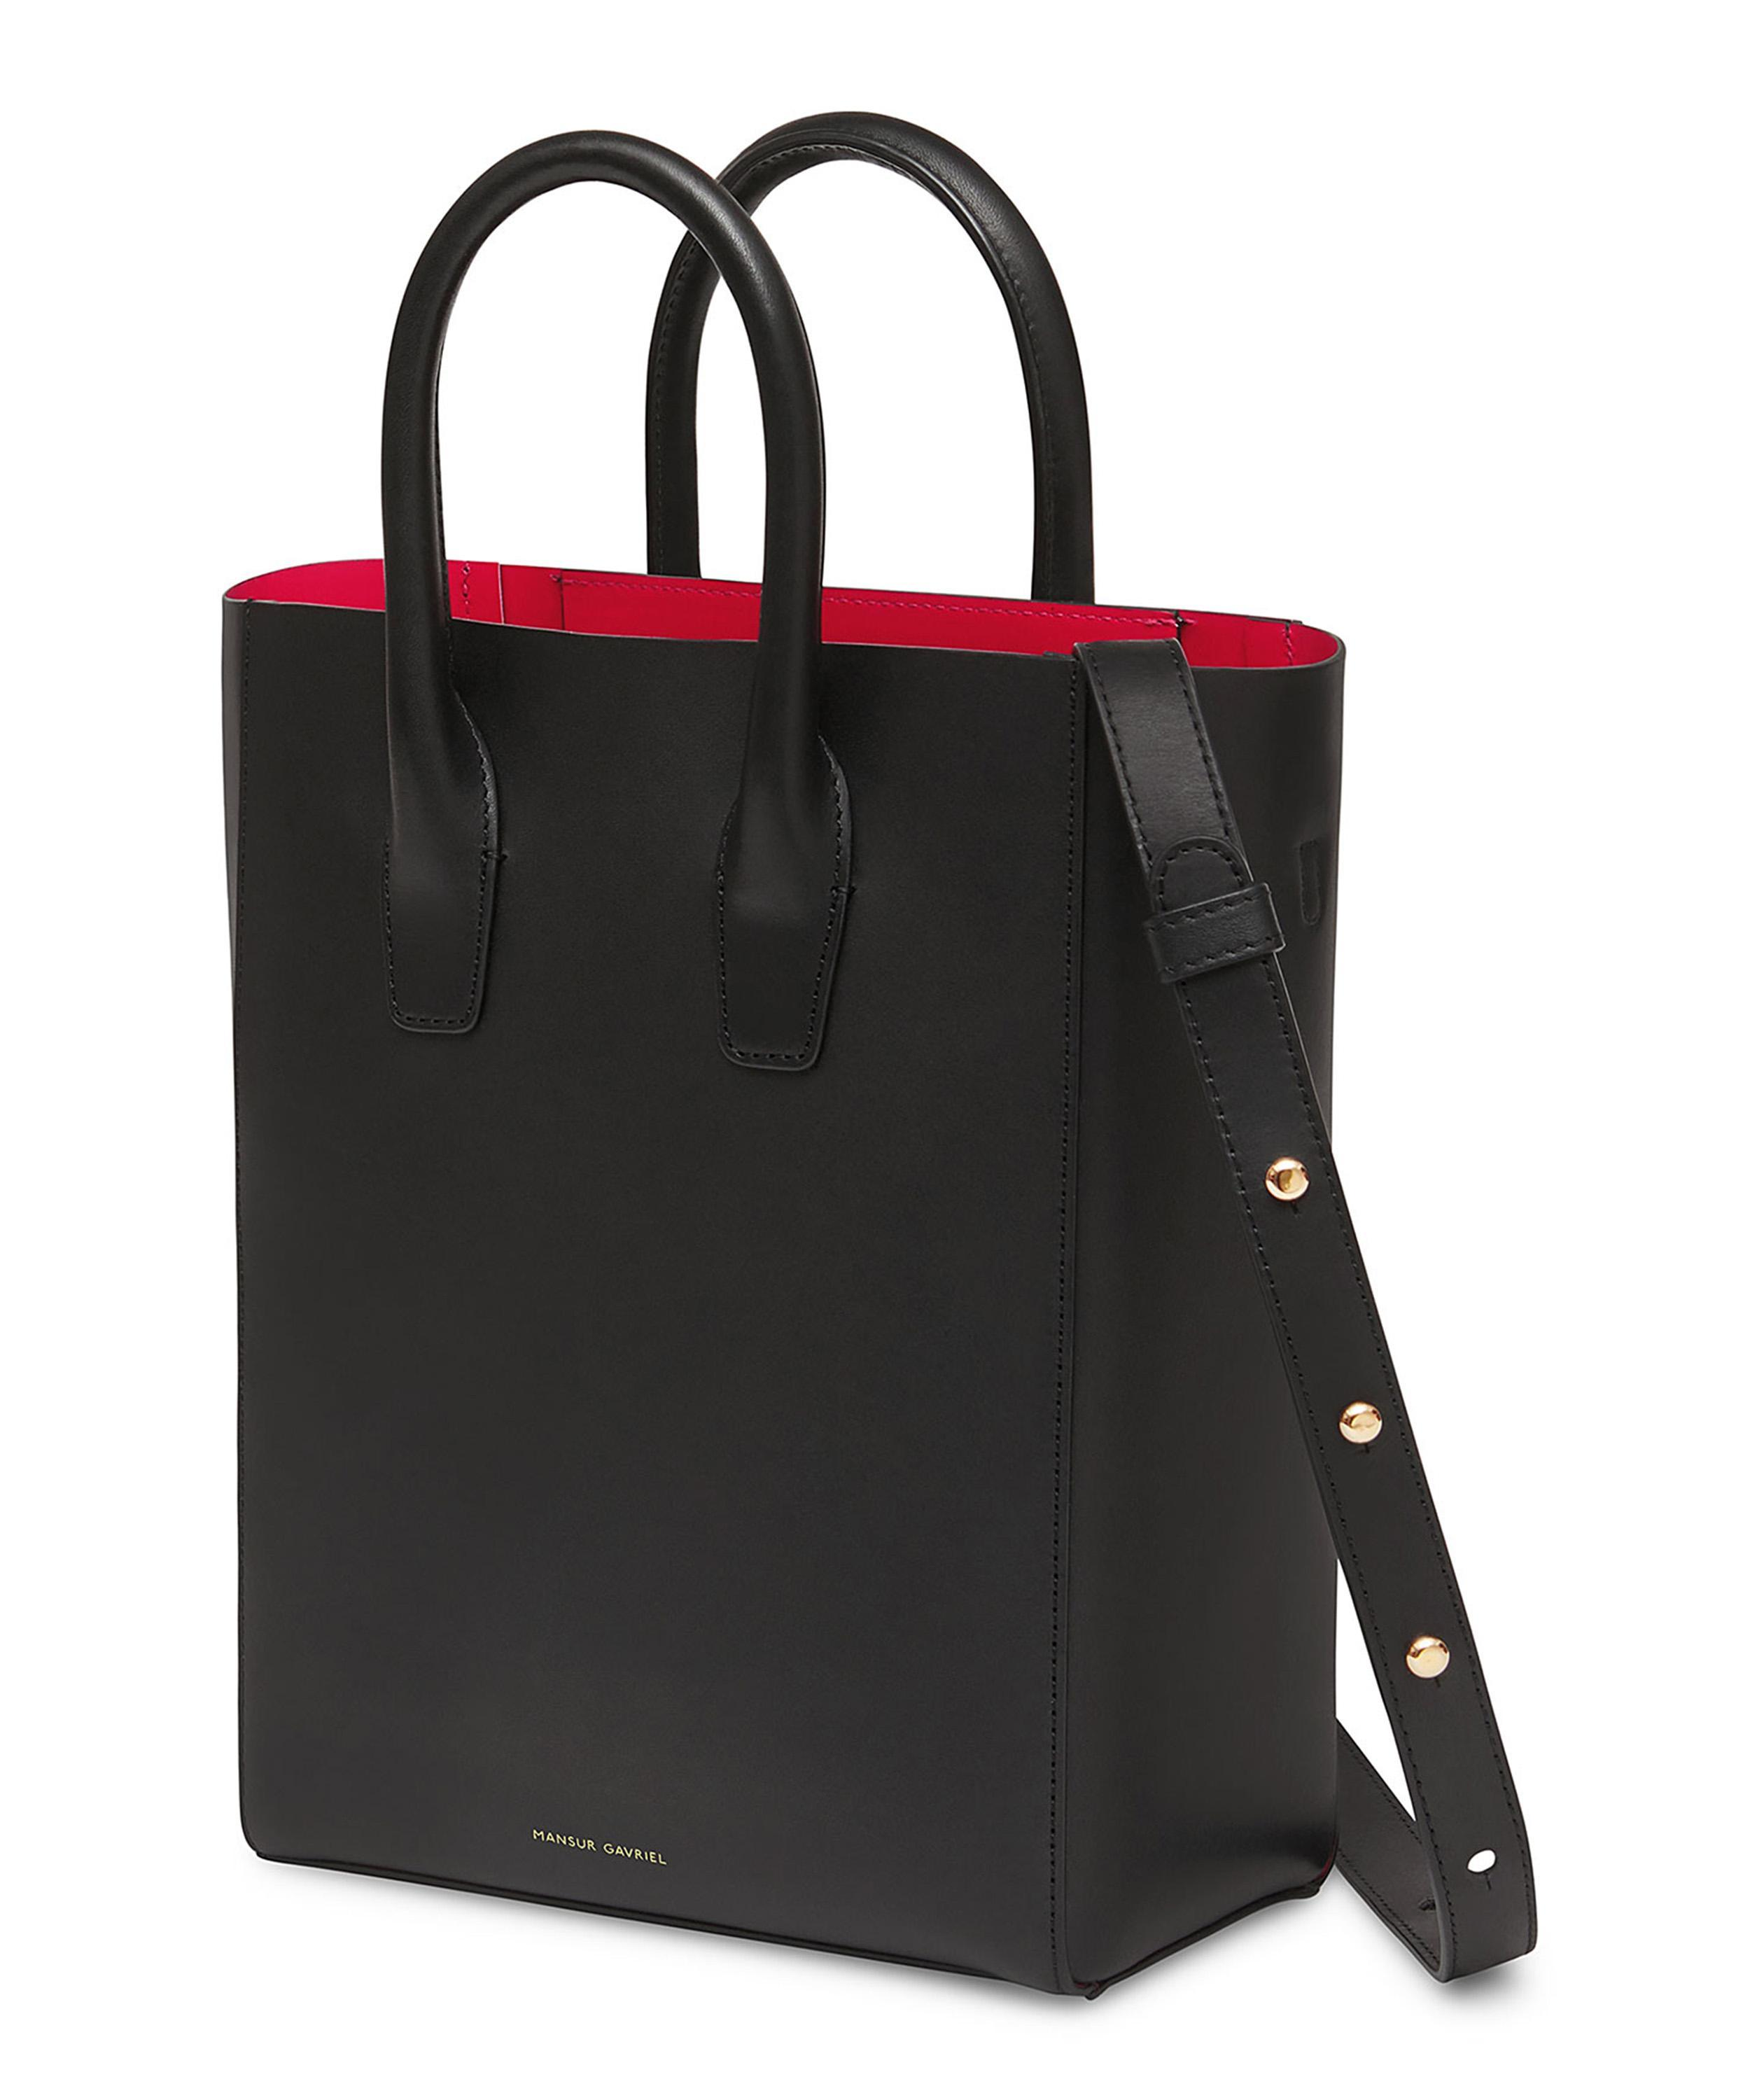 f01b1776e18f Lyst - Mansur Gavriel New Smooth Leather Tote Bag in Black - Save 16%